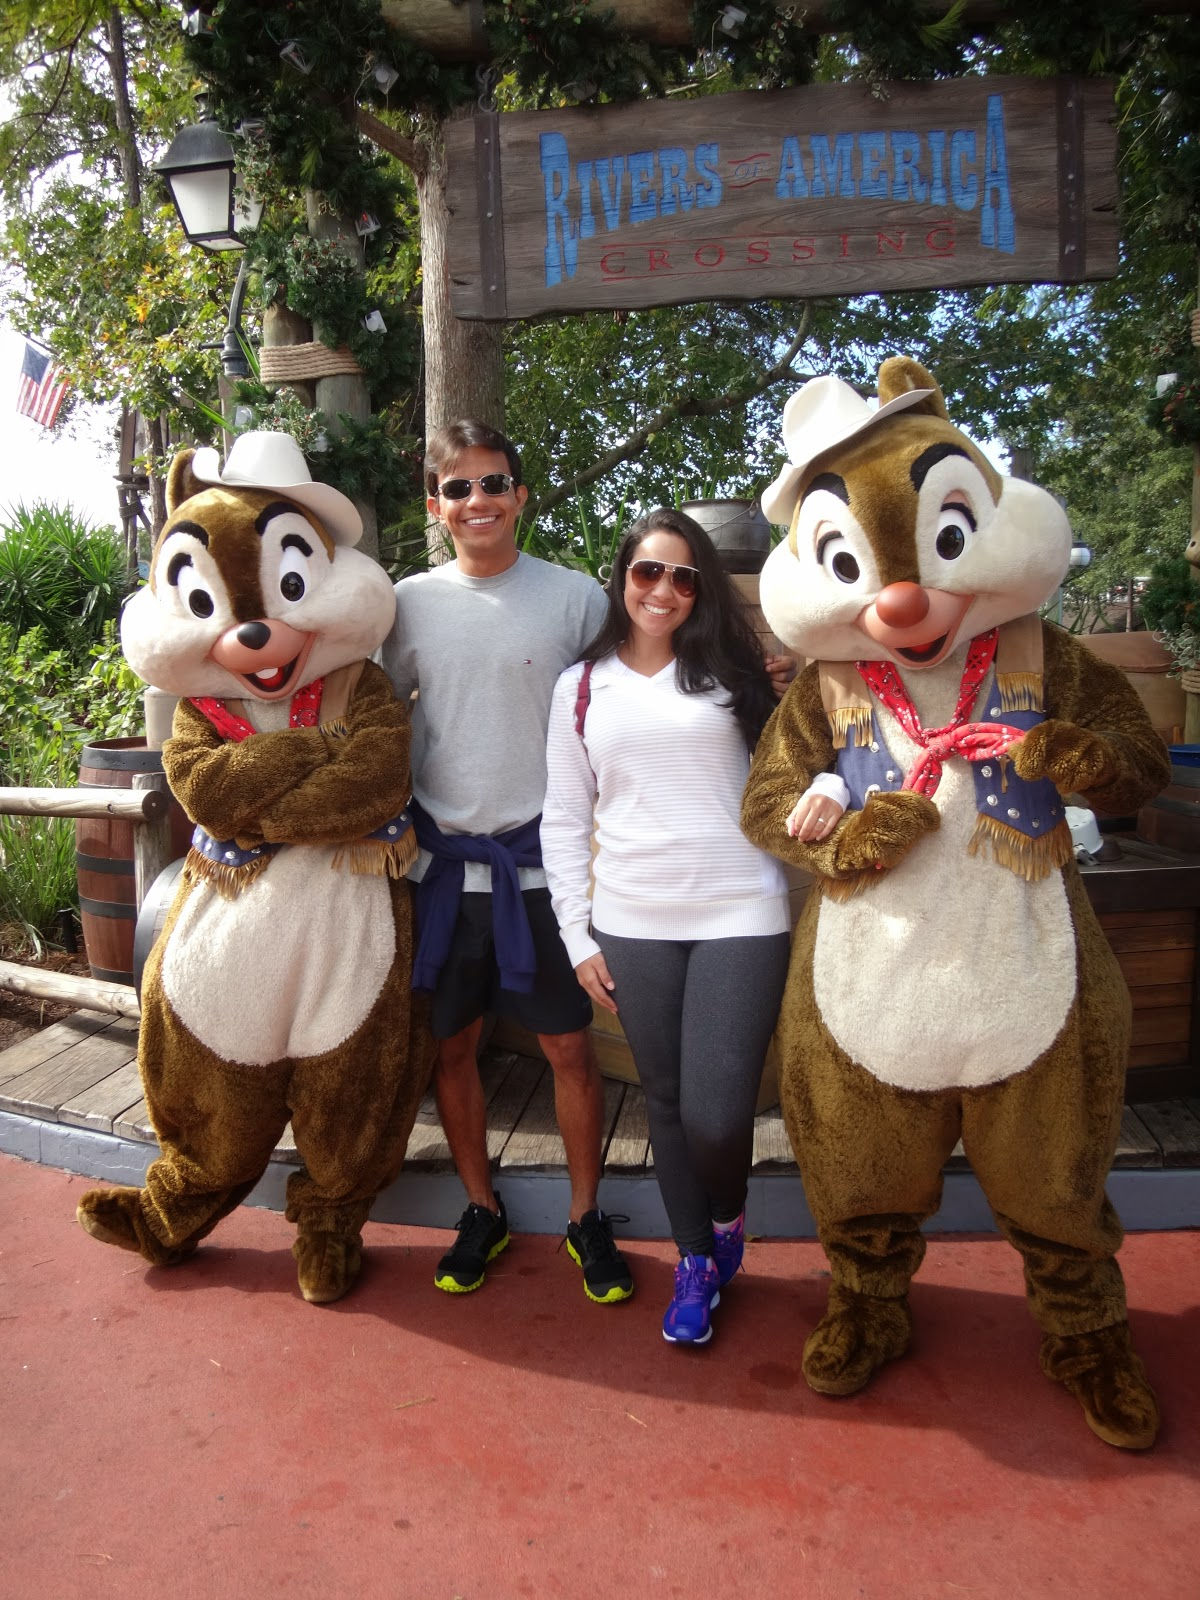 tico e teco - magic kingdom - orlando, eua